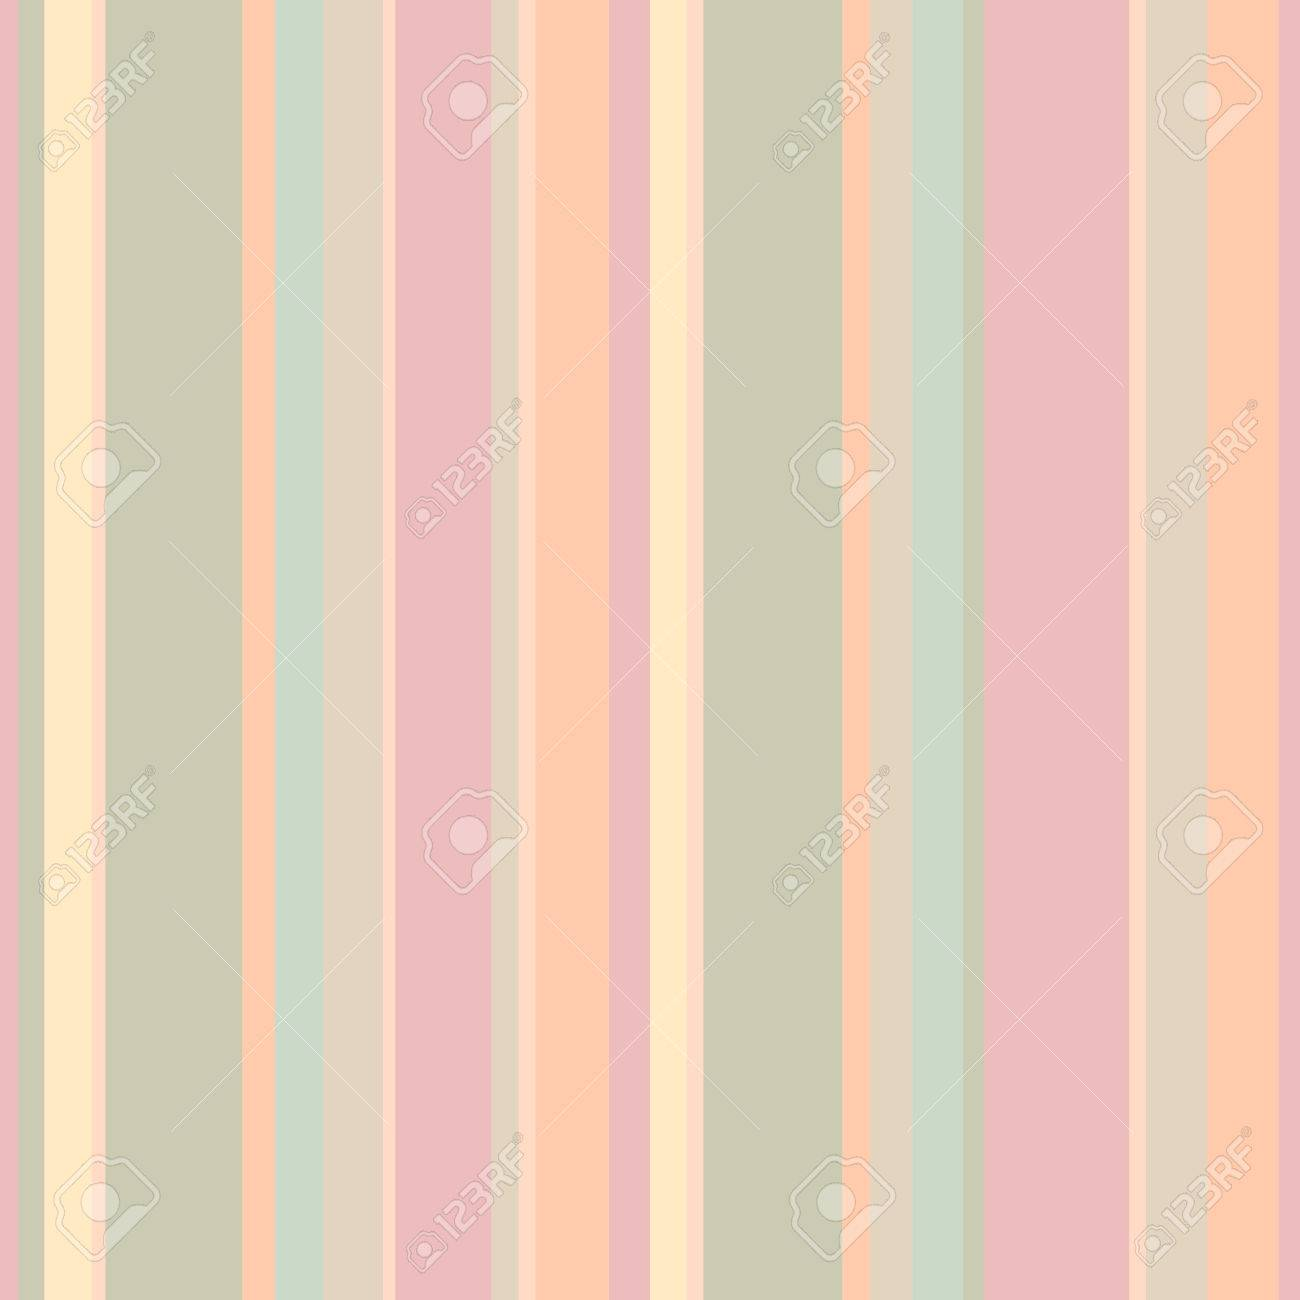 47427015 abstract vector pastel wallpaper with vertical strips seamless colorful background